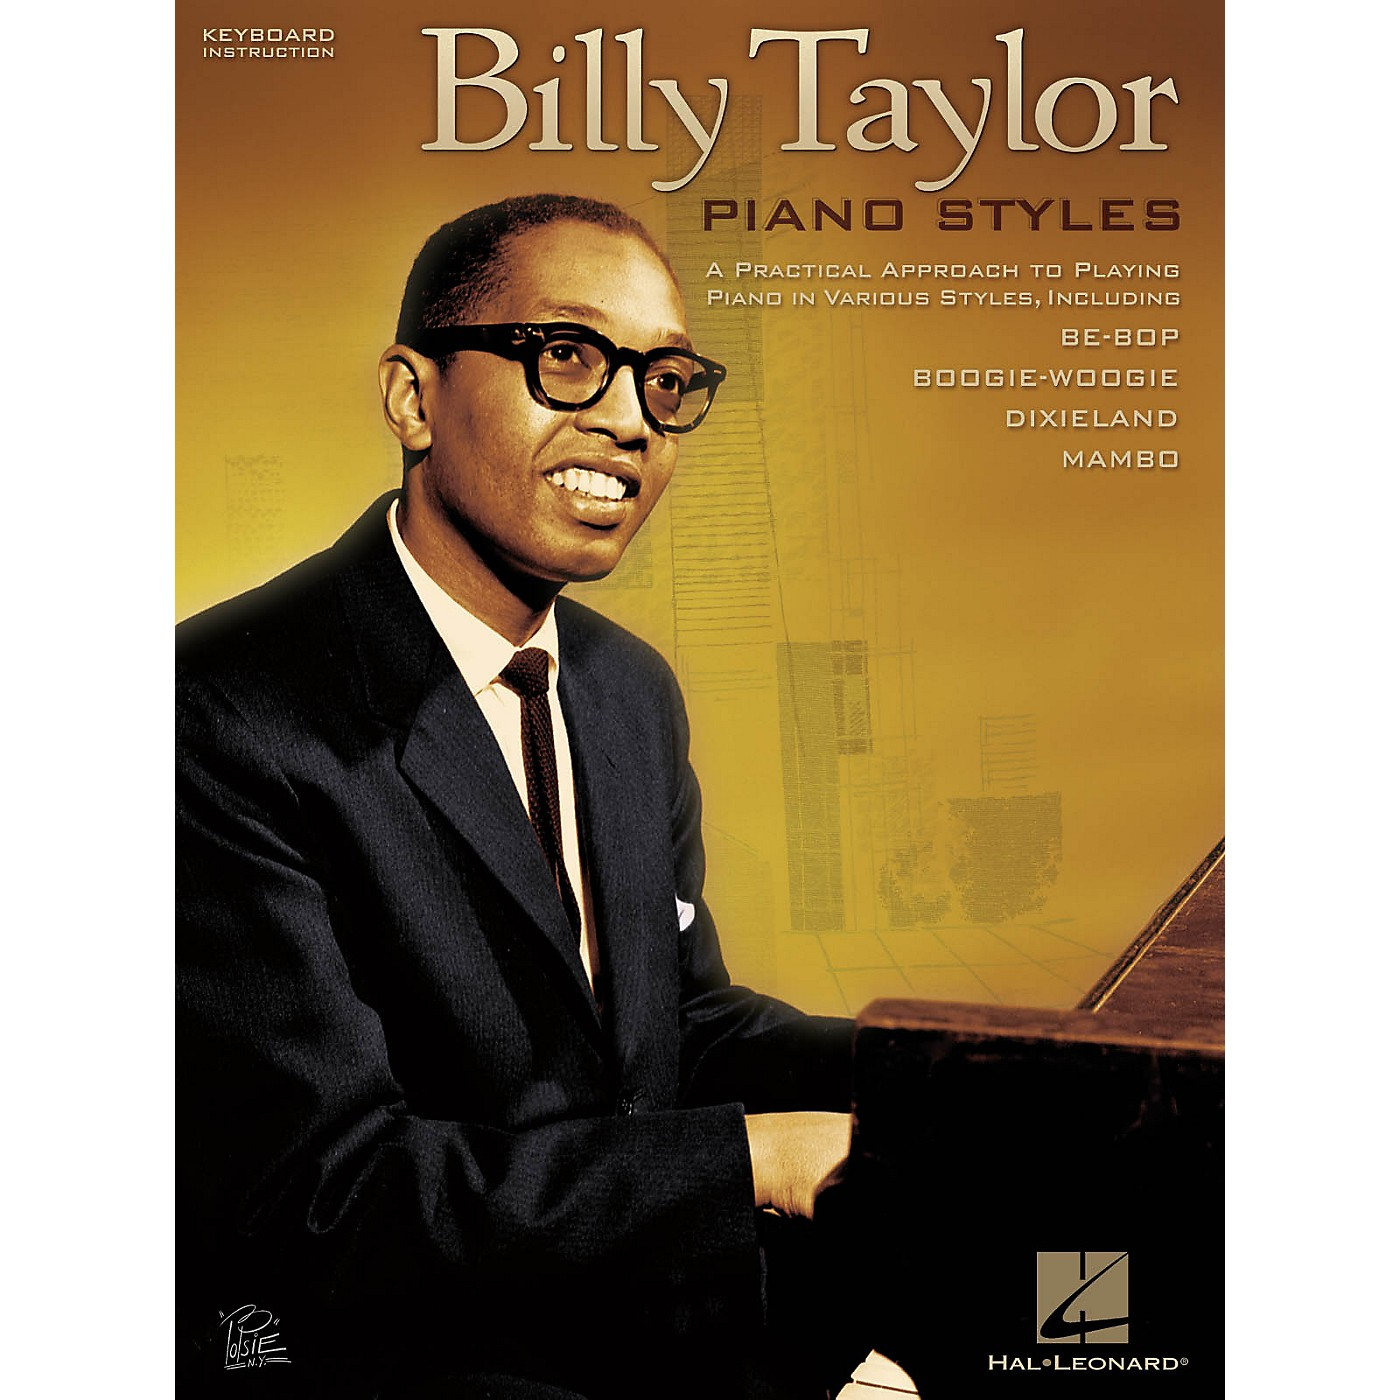 Hal Leonard Billy Taylor Piano Styles Keyboard Instruction Series Softcover Performed by Billy Taylor thumbnail